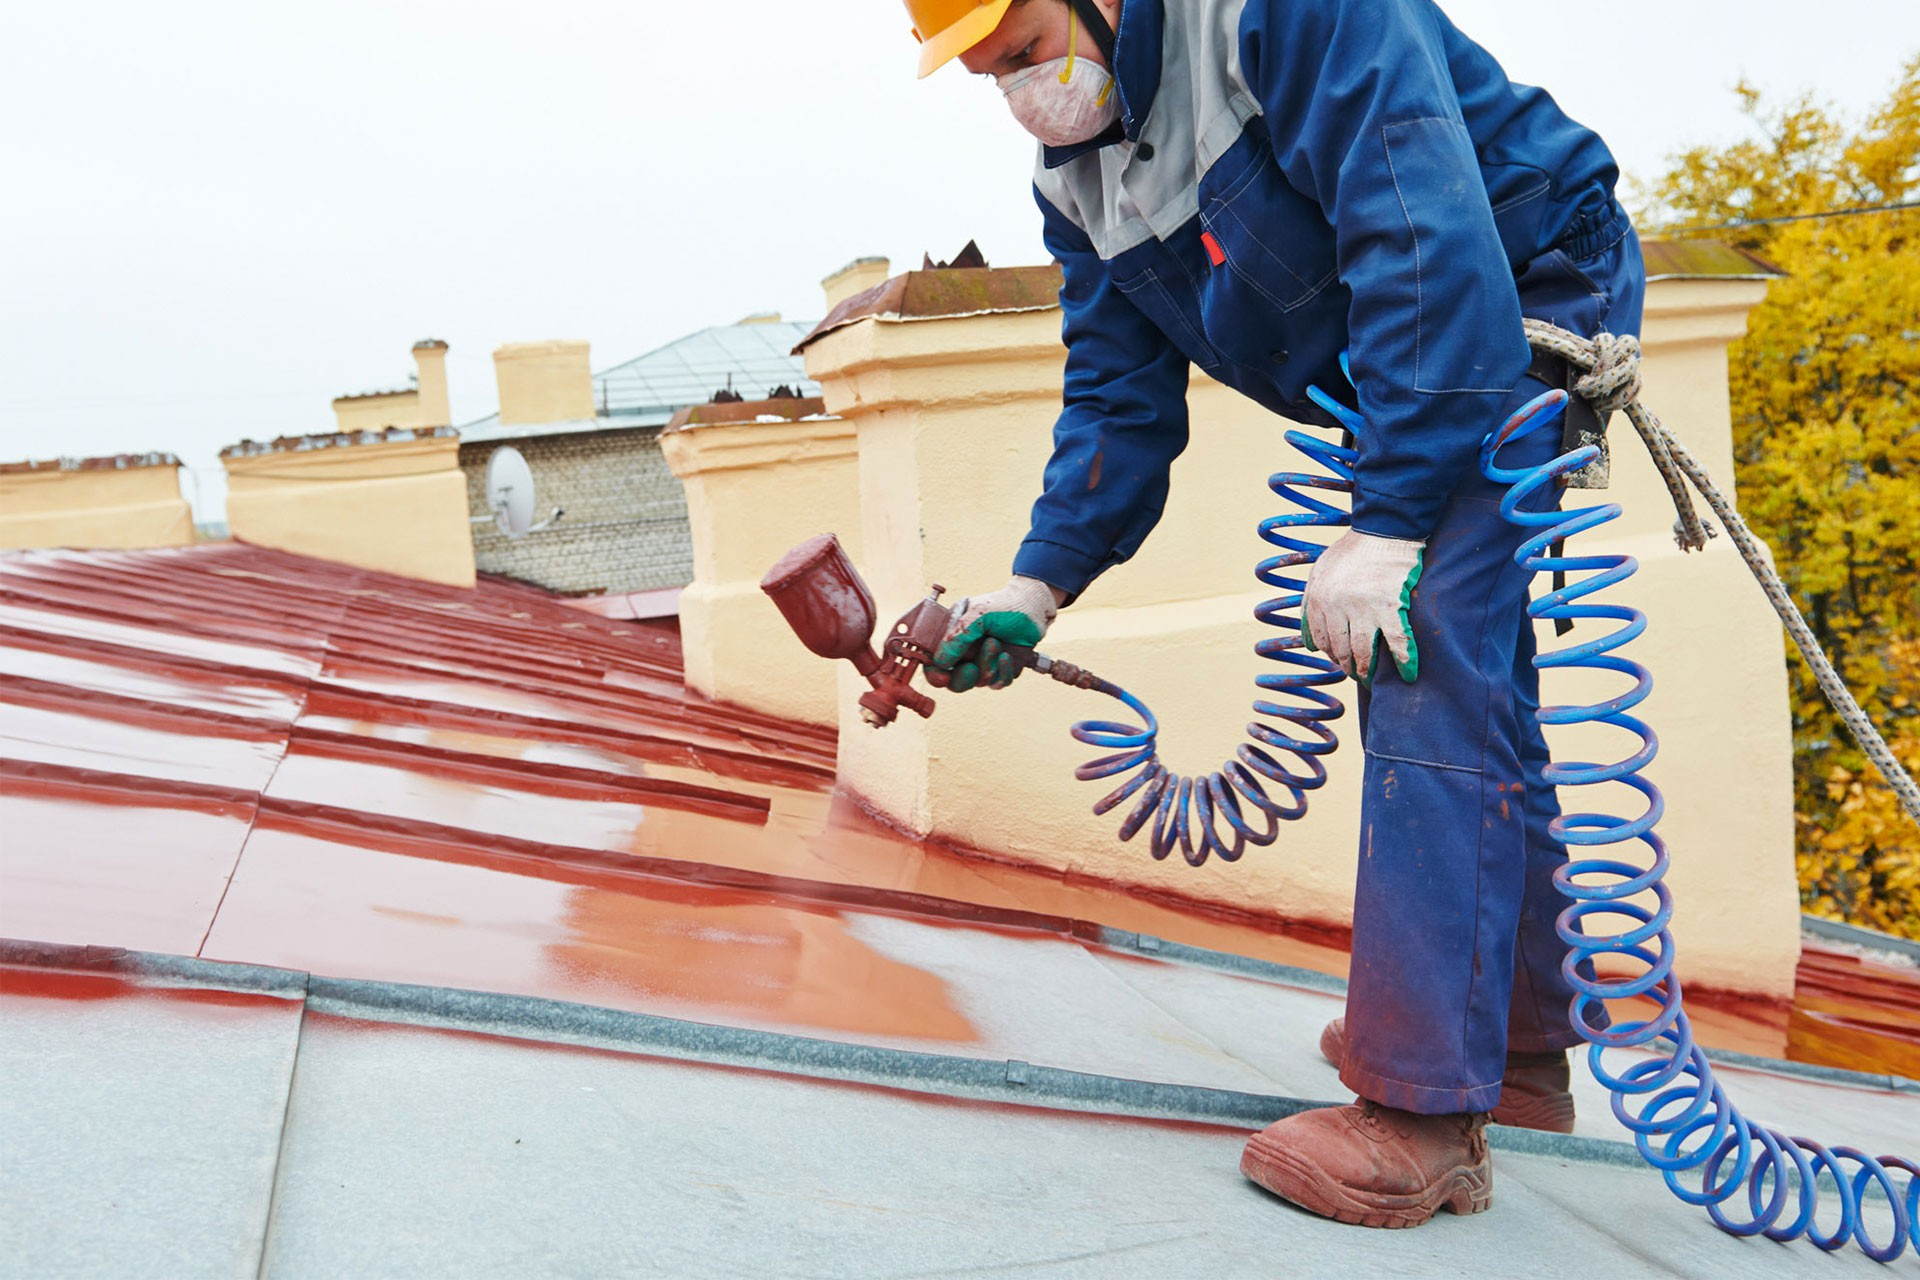 Hunter-San Marcos TX Professional Painting Contractors-We offer Residential & Commercial Painting, Interior Painting, Exterior Painting, Primer Painting, Industrial Painting, Professional Painters, Institutional Painters, and more.